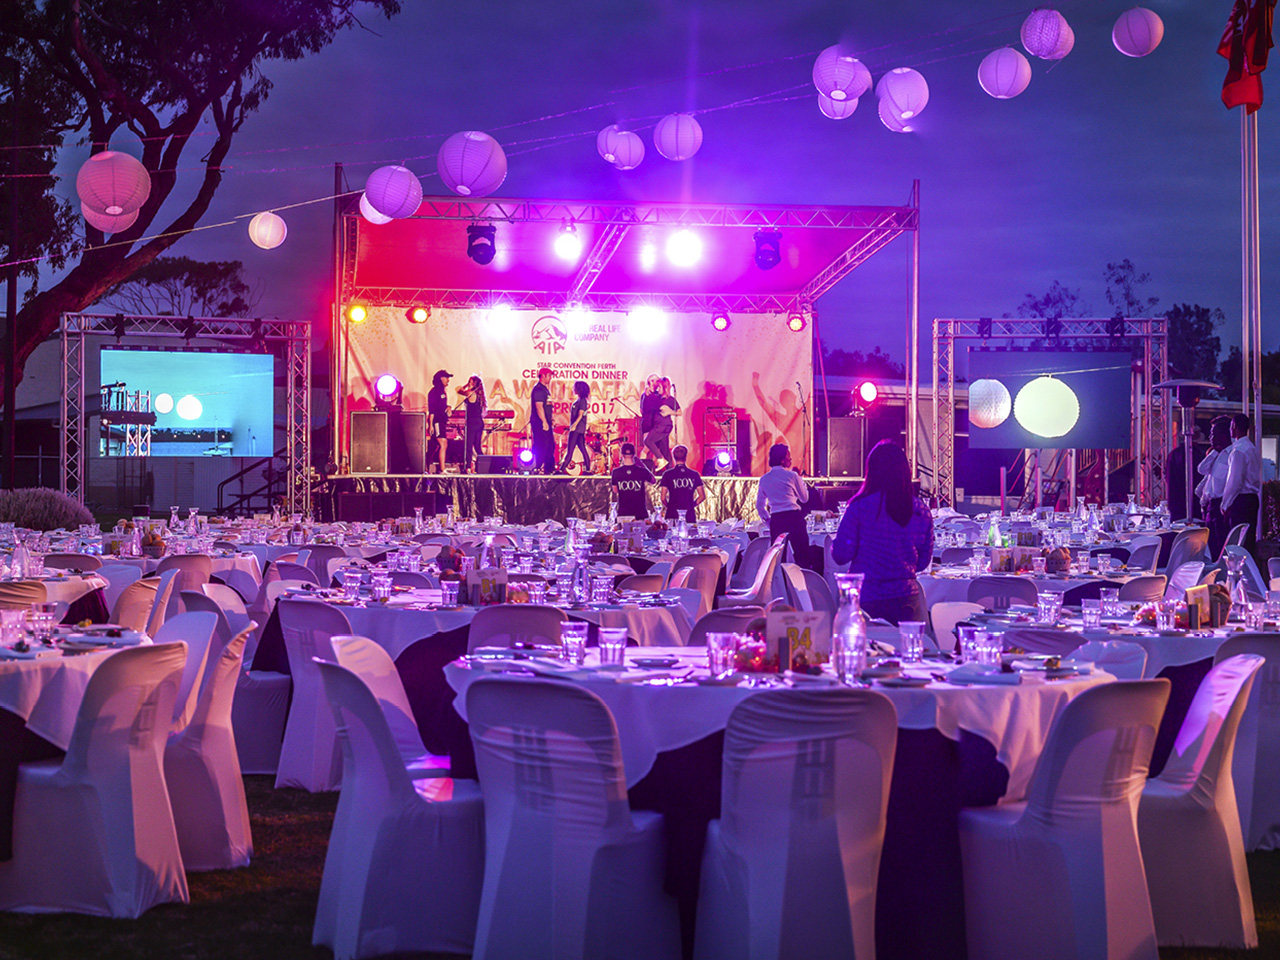 Banquet Style Open Function With Stage, Lights, Projection Screen And Performers Getting Ready